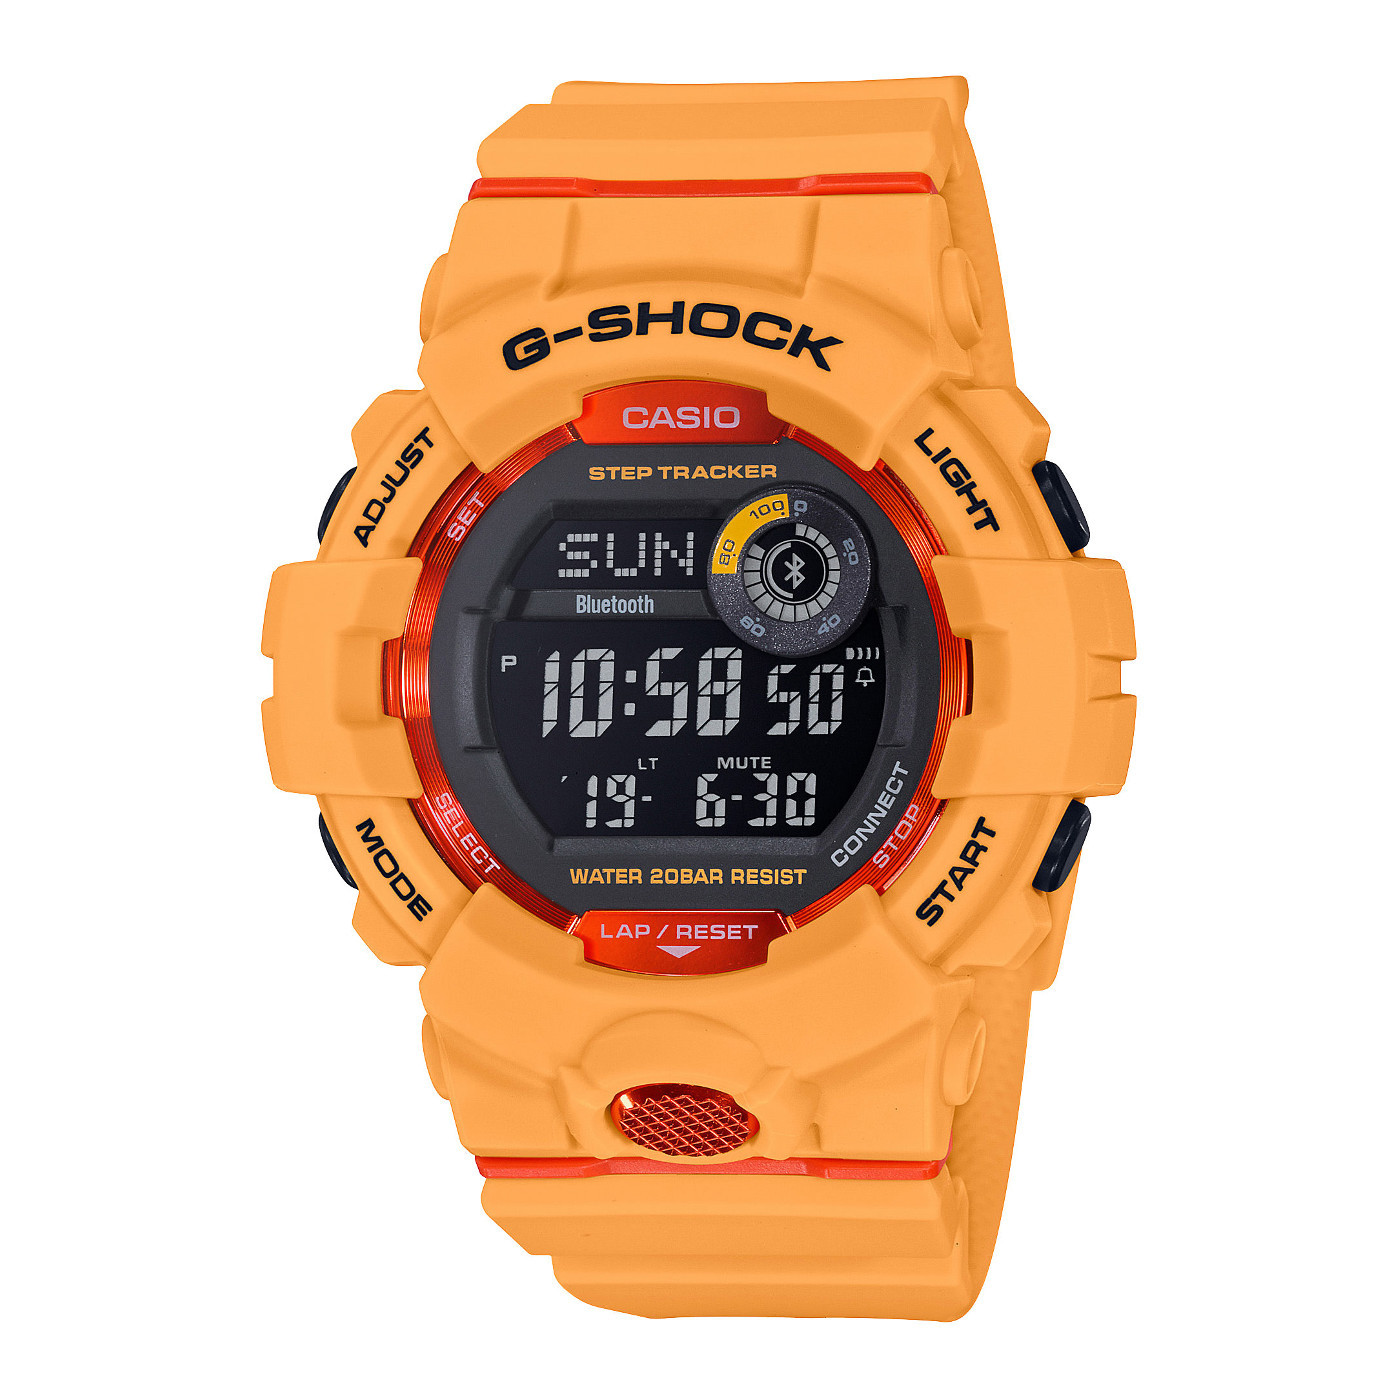 G-Shock G-Squad Stepcounter Bluetooth Connected horloge GBD-800-4ER